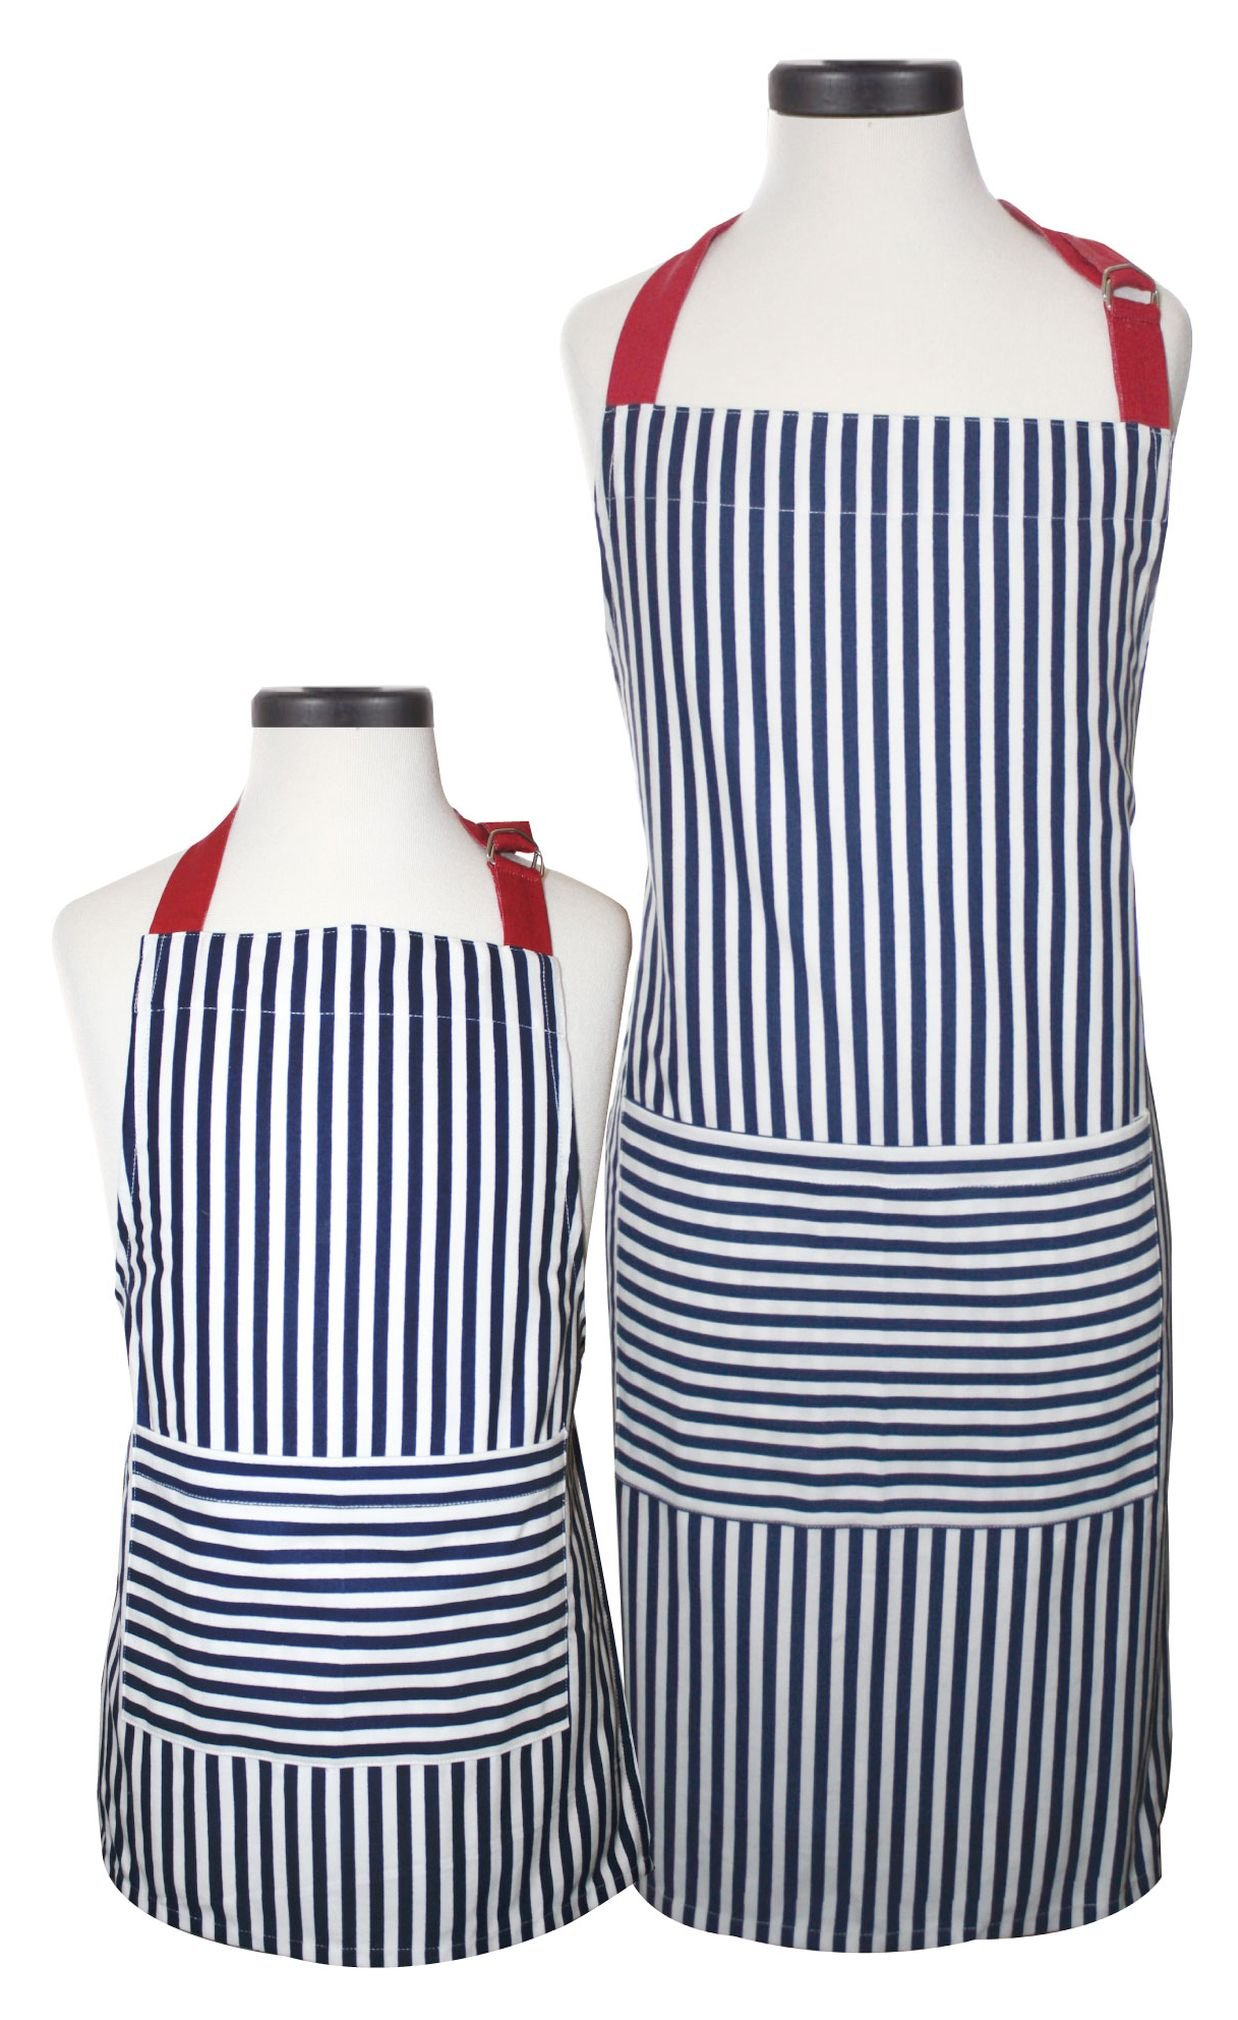 Handstand Kitchen Adult and Child Bold Navy Stripe 100% Cotton Apron Gift Set